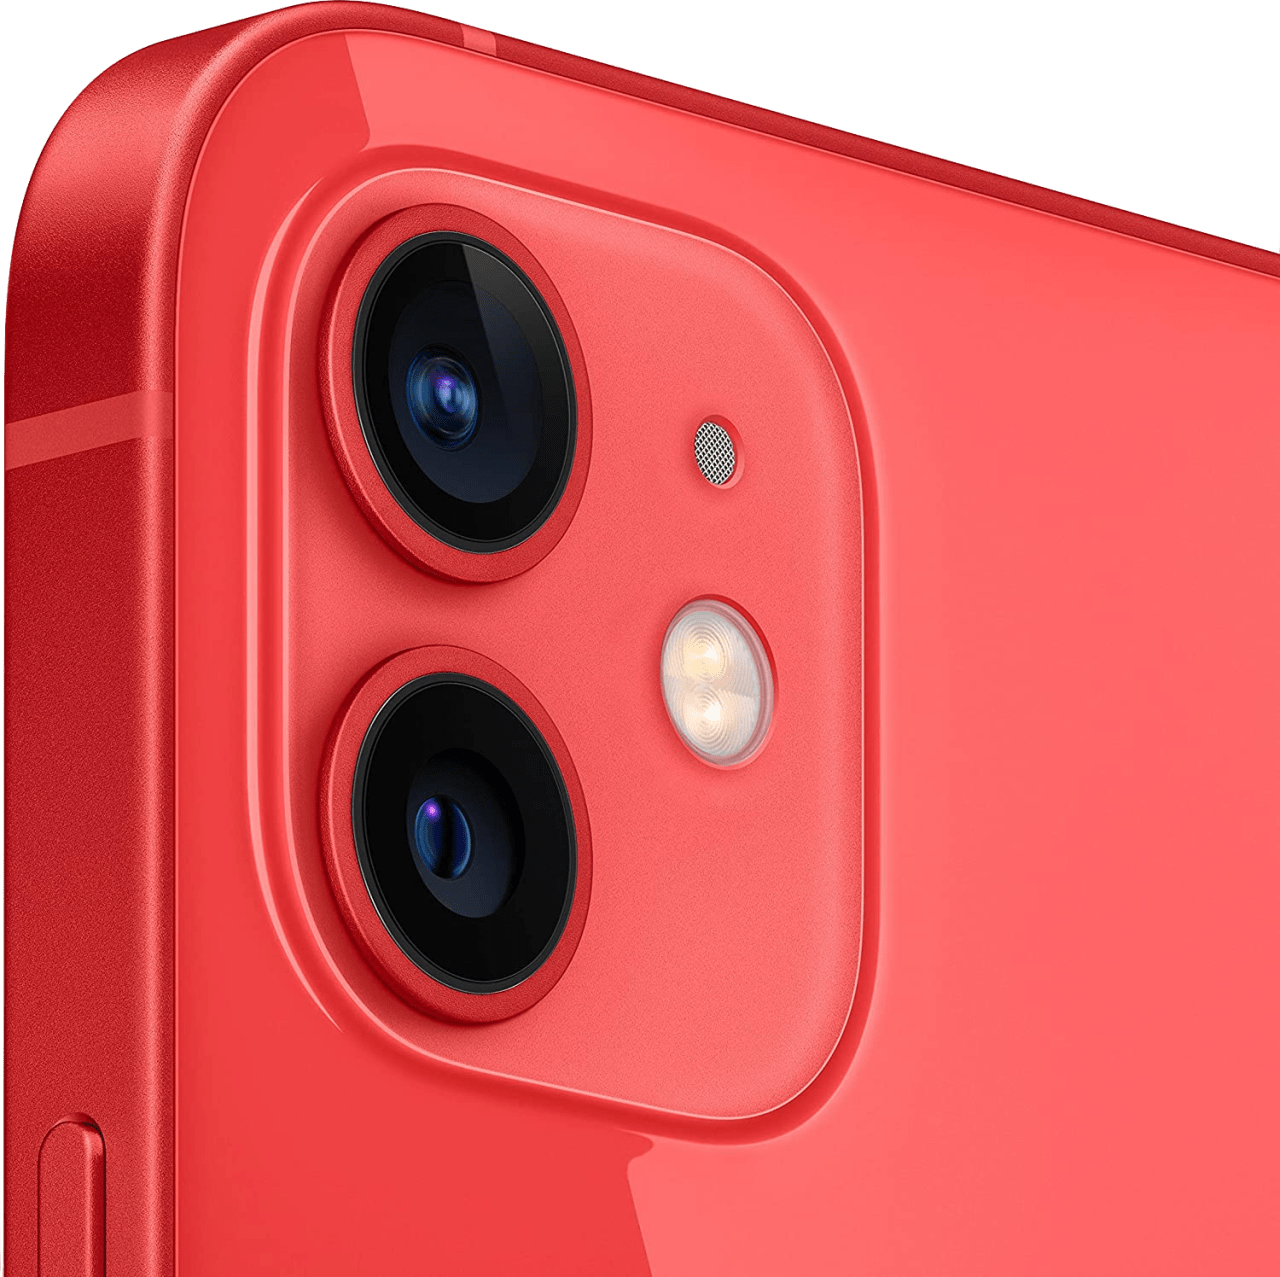 (Product)Red Apple iPhone 12 256GB.4